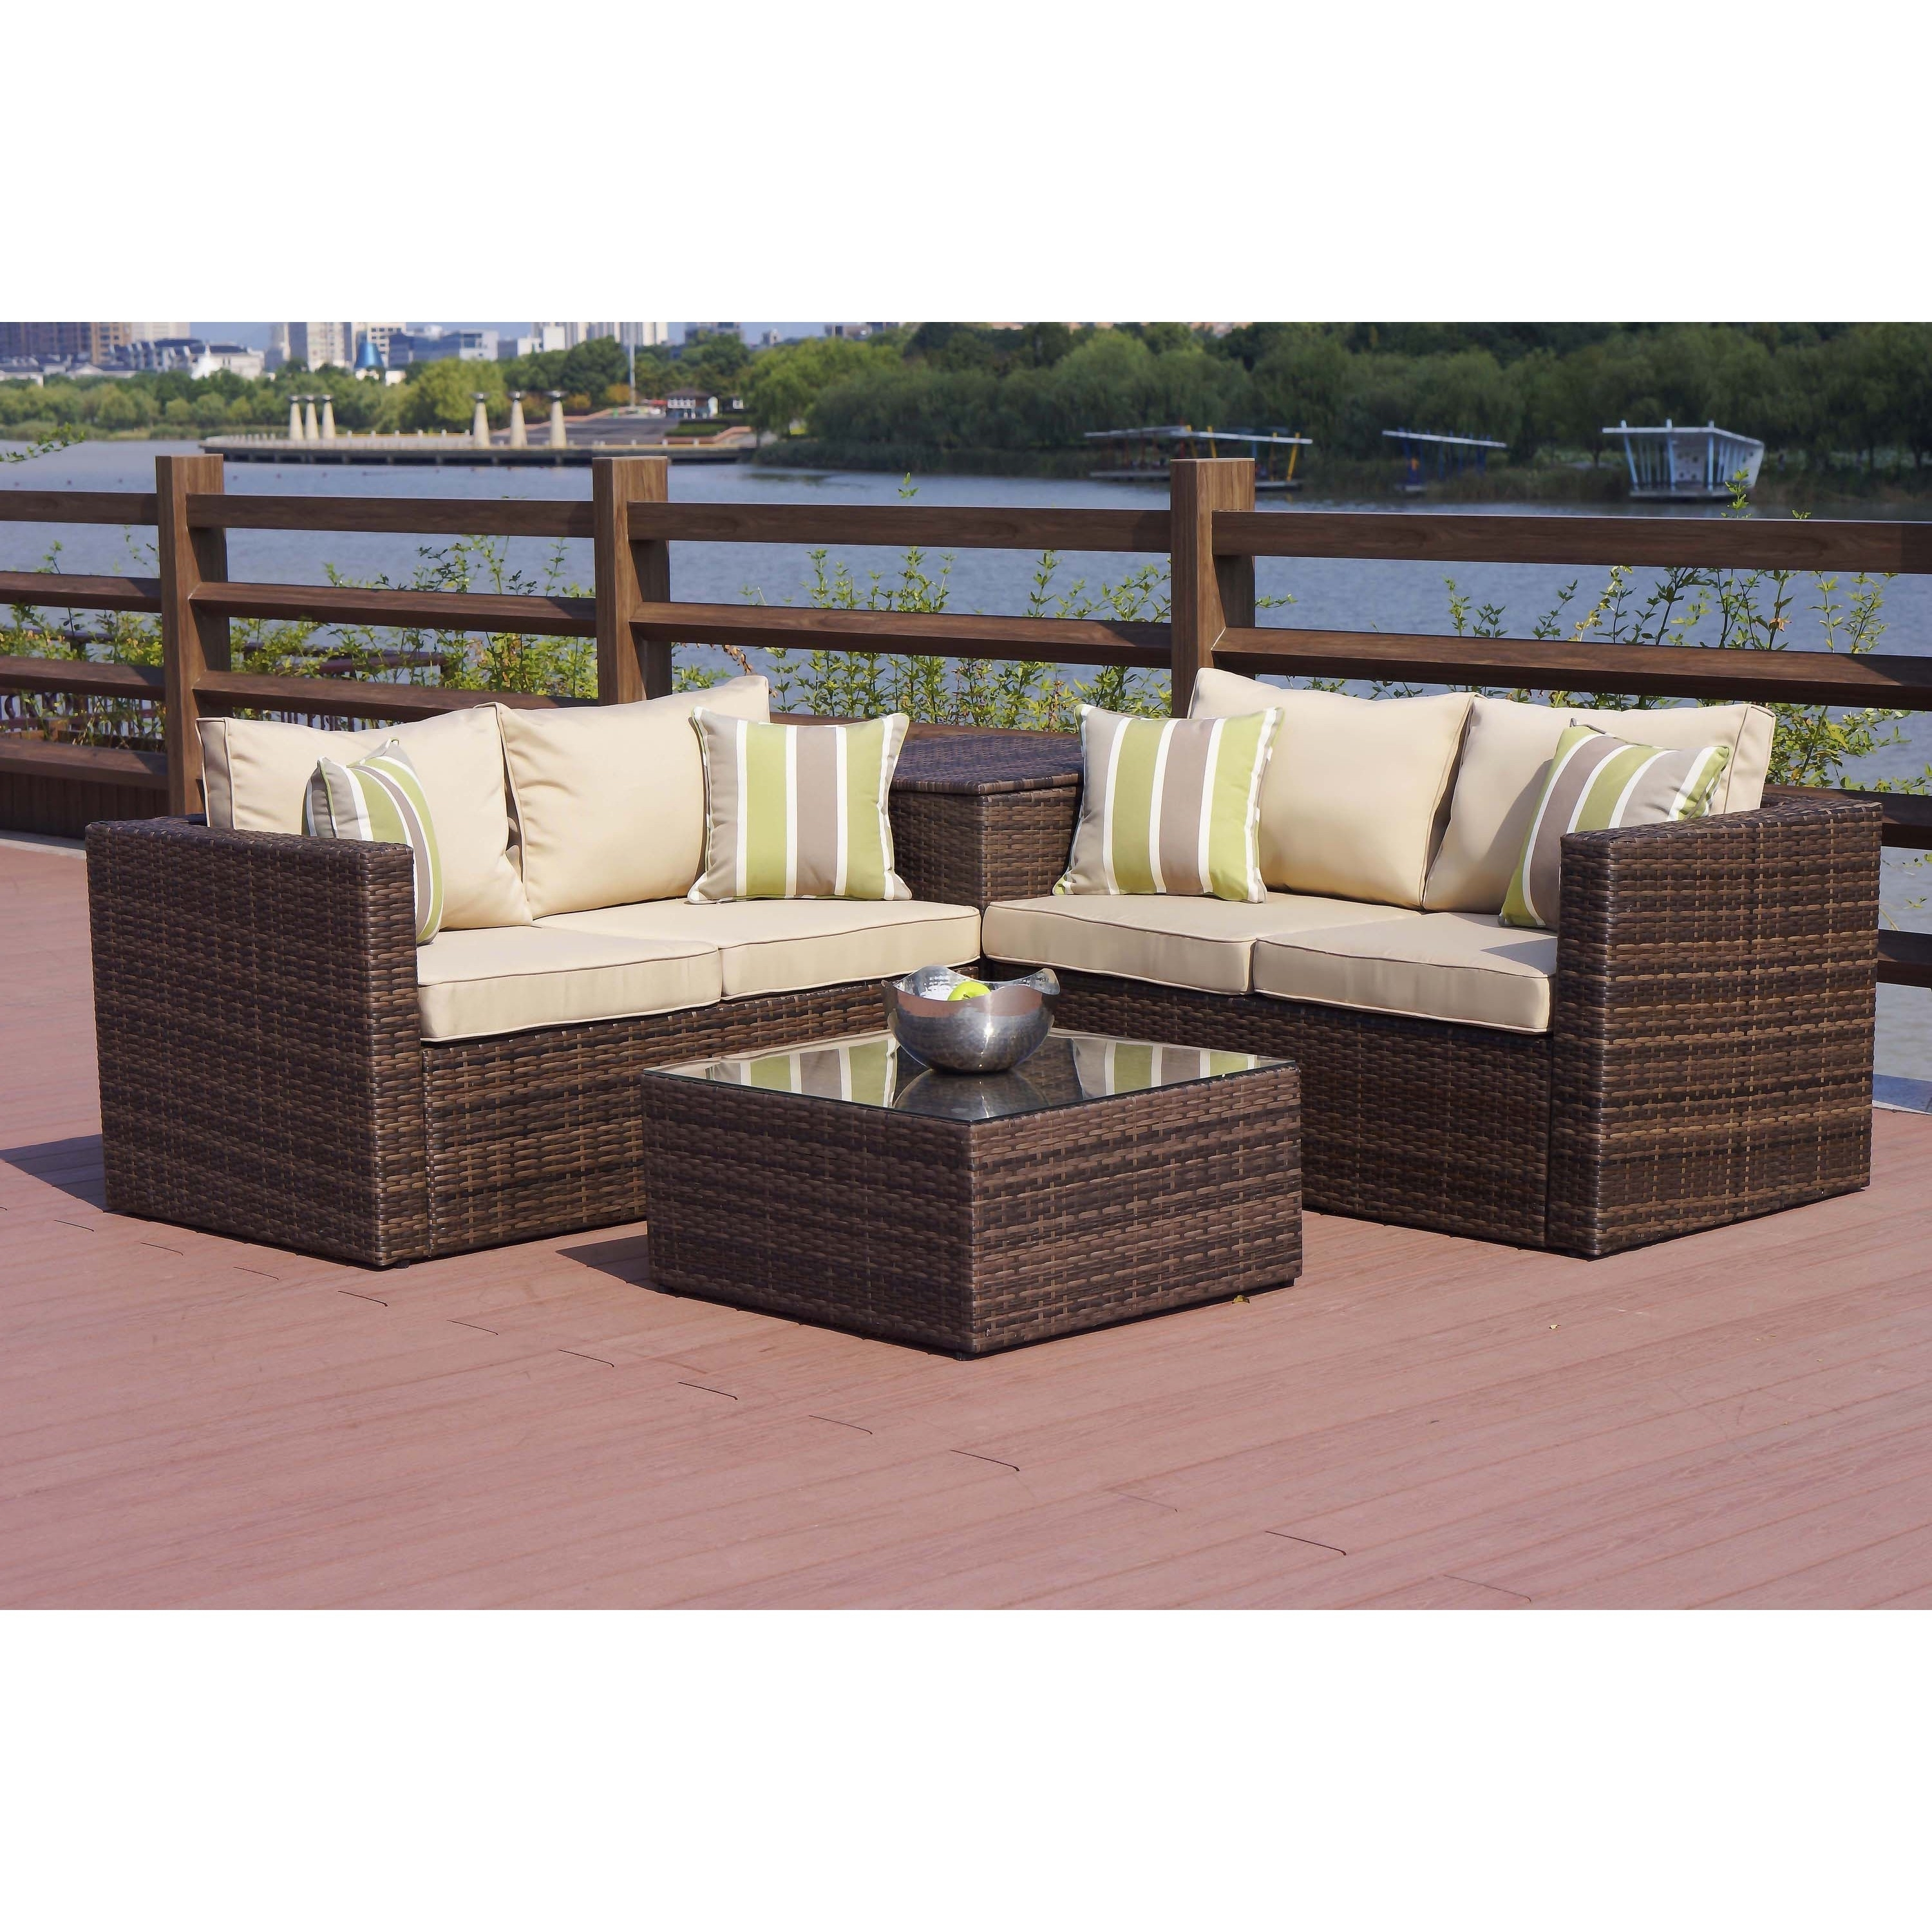 Shop Zoe Outdoor 4 Piece Conversation Set With Storage Box – On Sale Inside Most Current Patio Conversation Set With Storage (View 15 of 20)